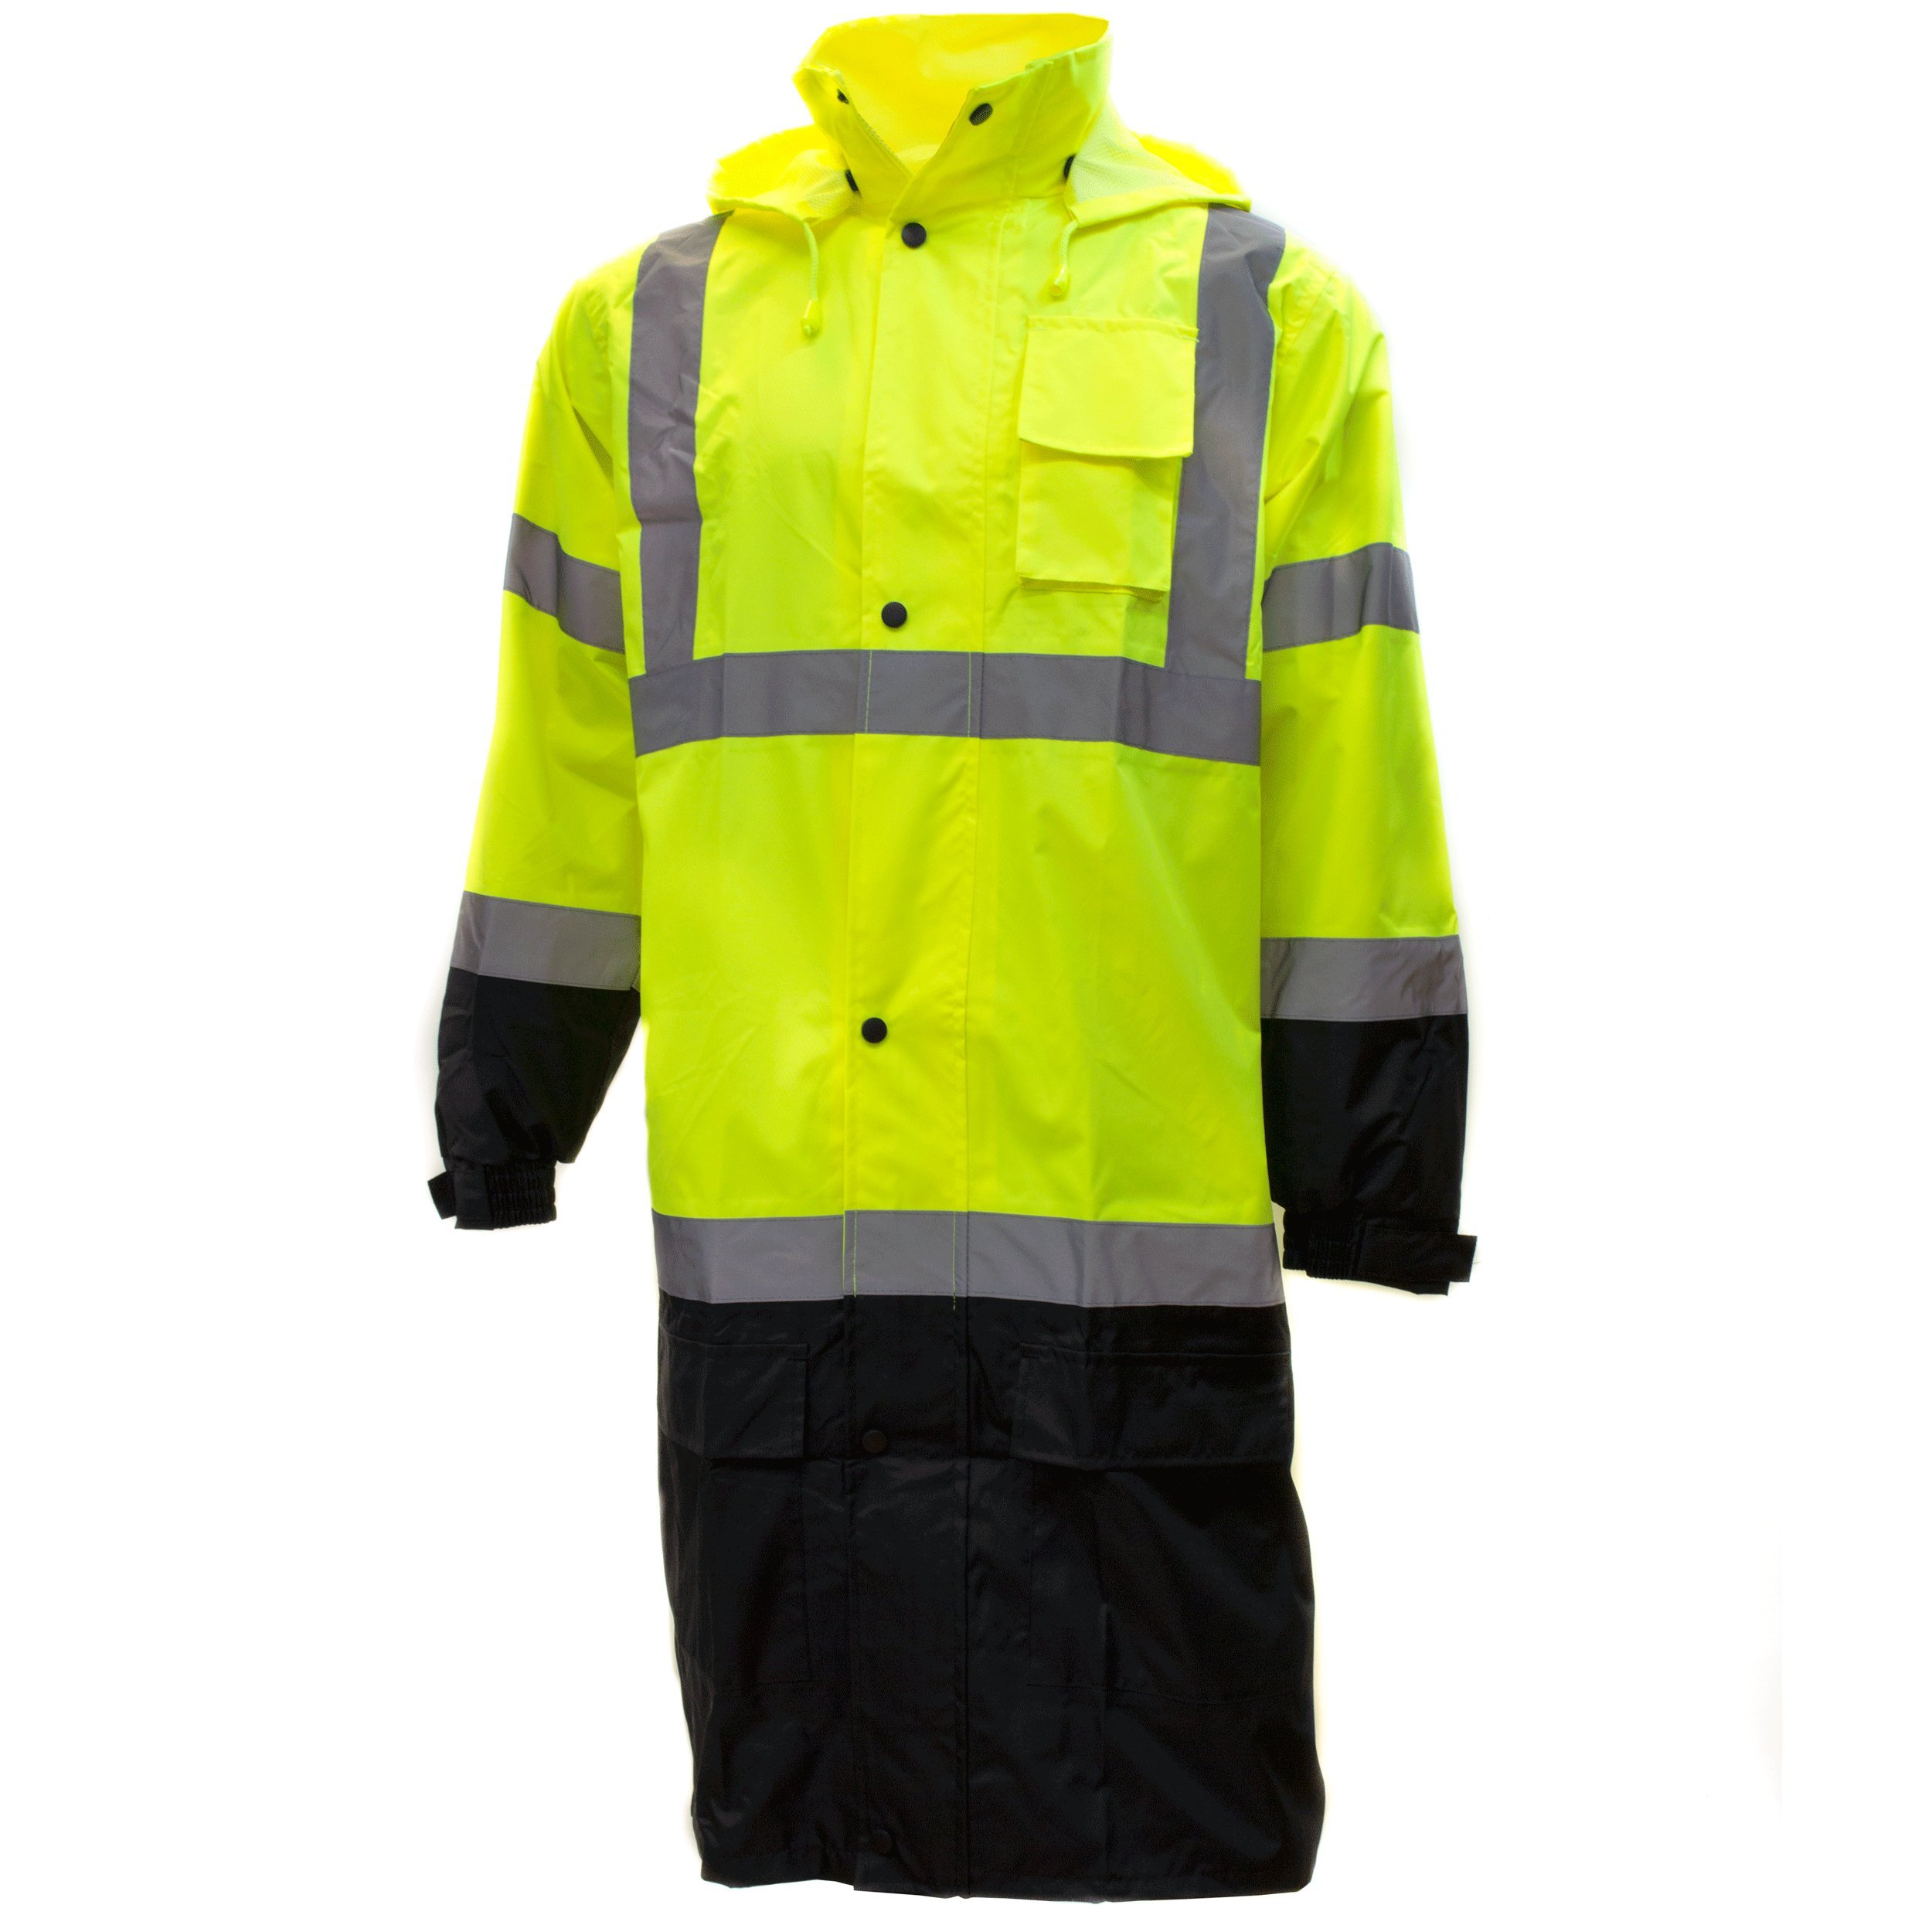 RK Class 3 Rainwear Reflective Hi-Viz Black Bottom Long Rain Coat RC-CLA3-LM22 (Small, Lime) by New York Hi-Viz Workwear